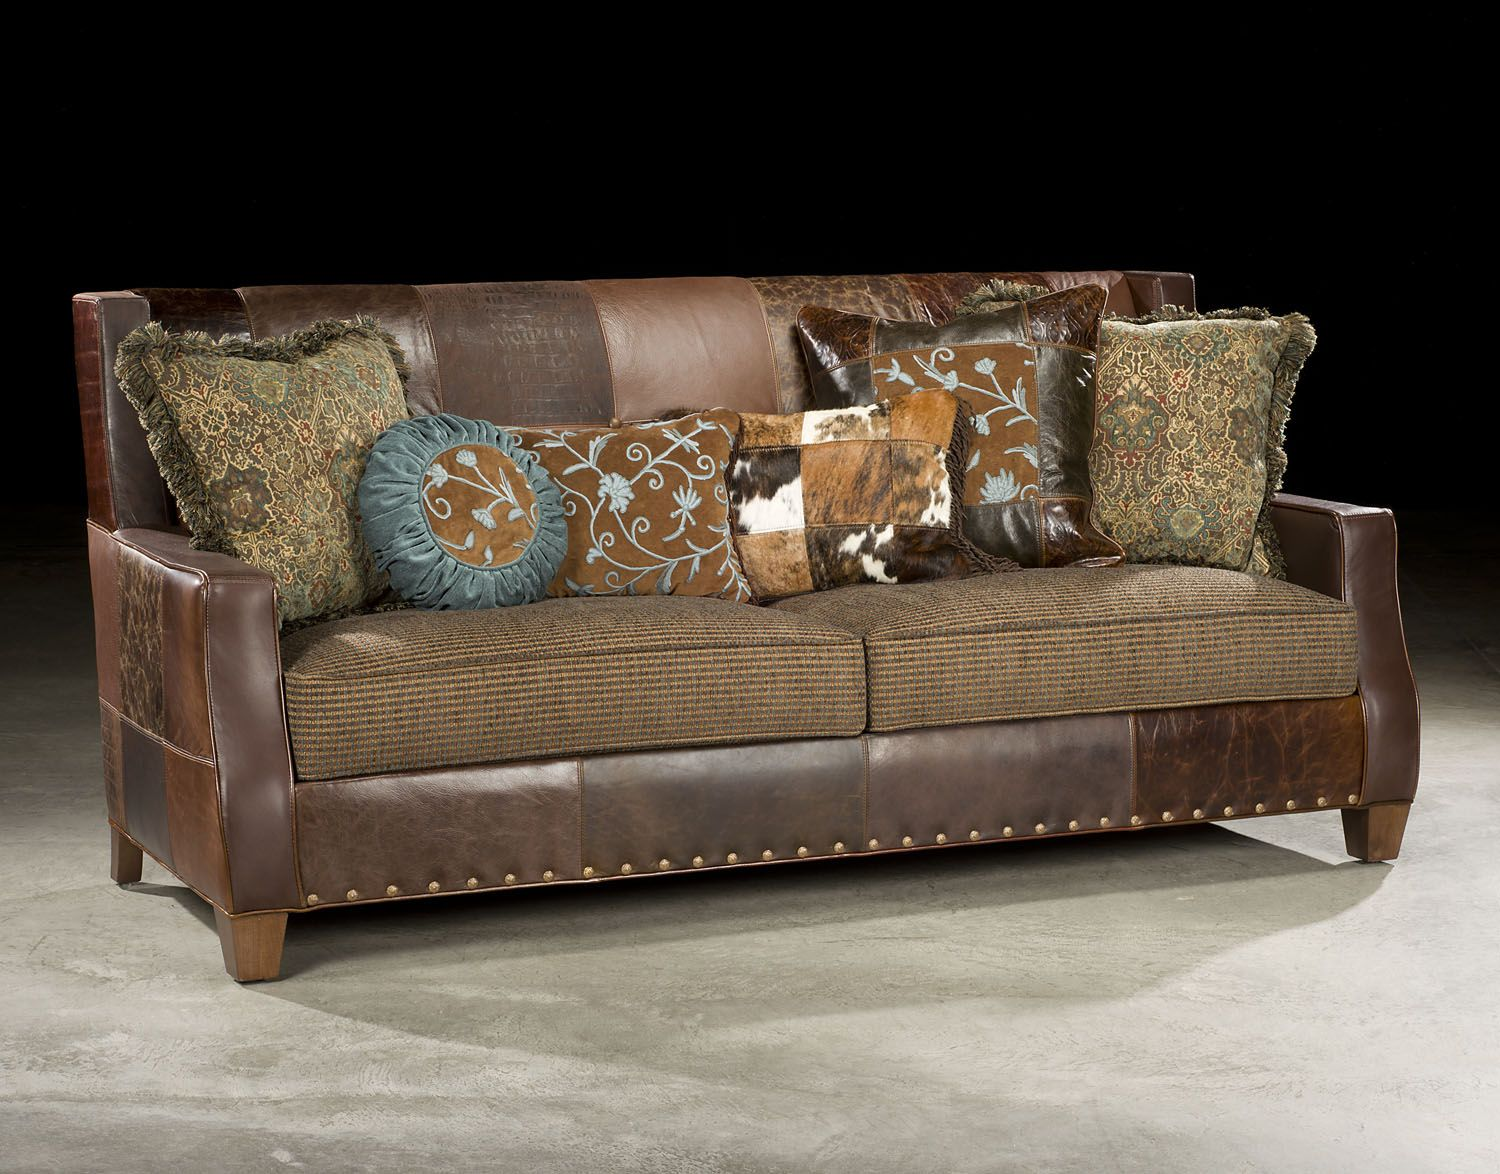 Living Room Furniture North Carolina Cooper Sofa In Brown And Leather Paul Robert Furniture